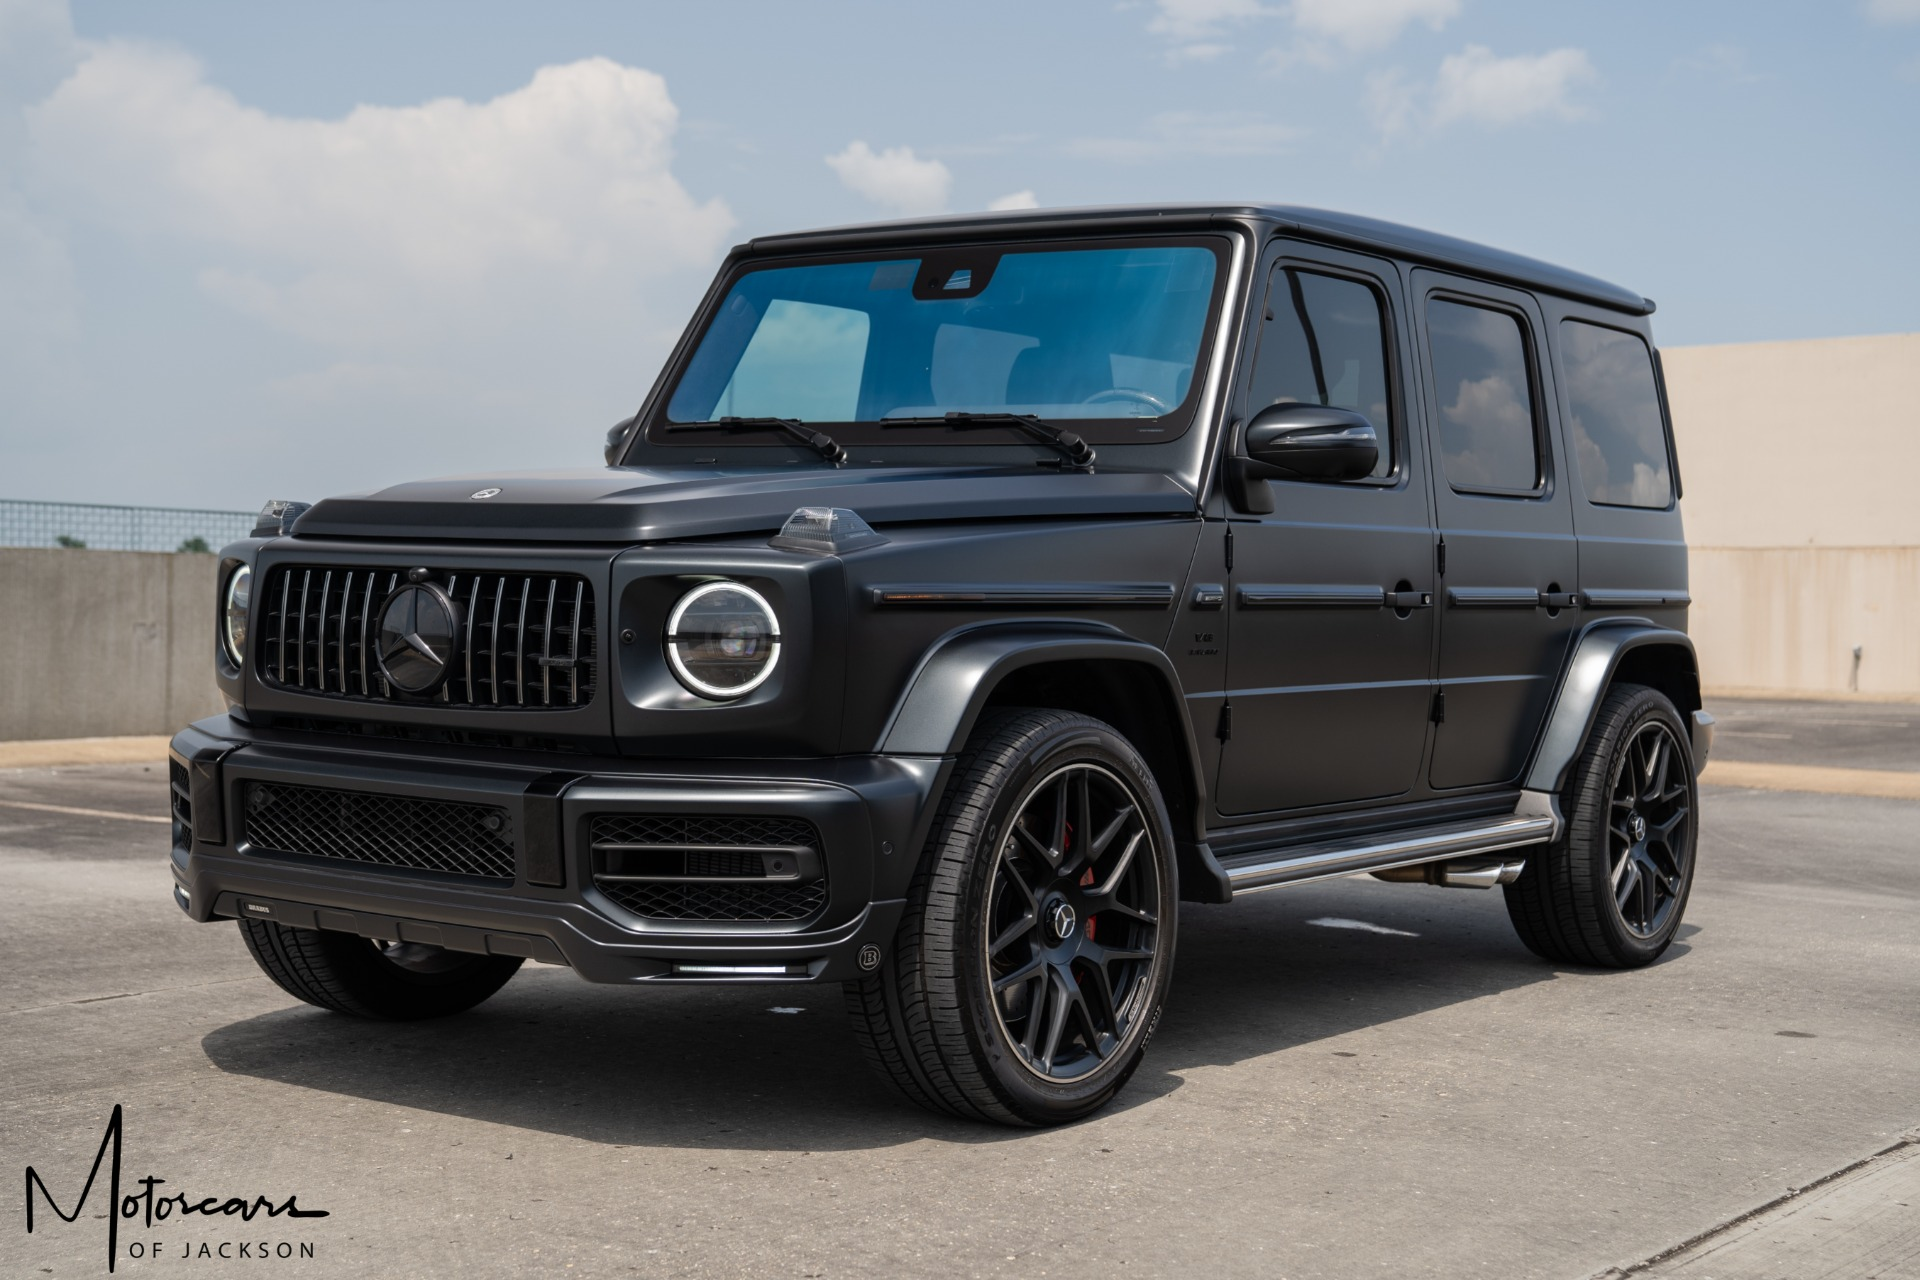 Used-2021-Mercedes-Benz-G-Class-AMG-G-63-Factory-Matte-!!-Jackson-MS